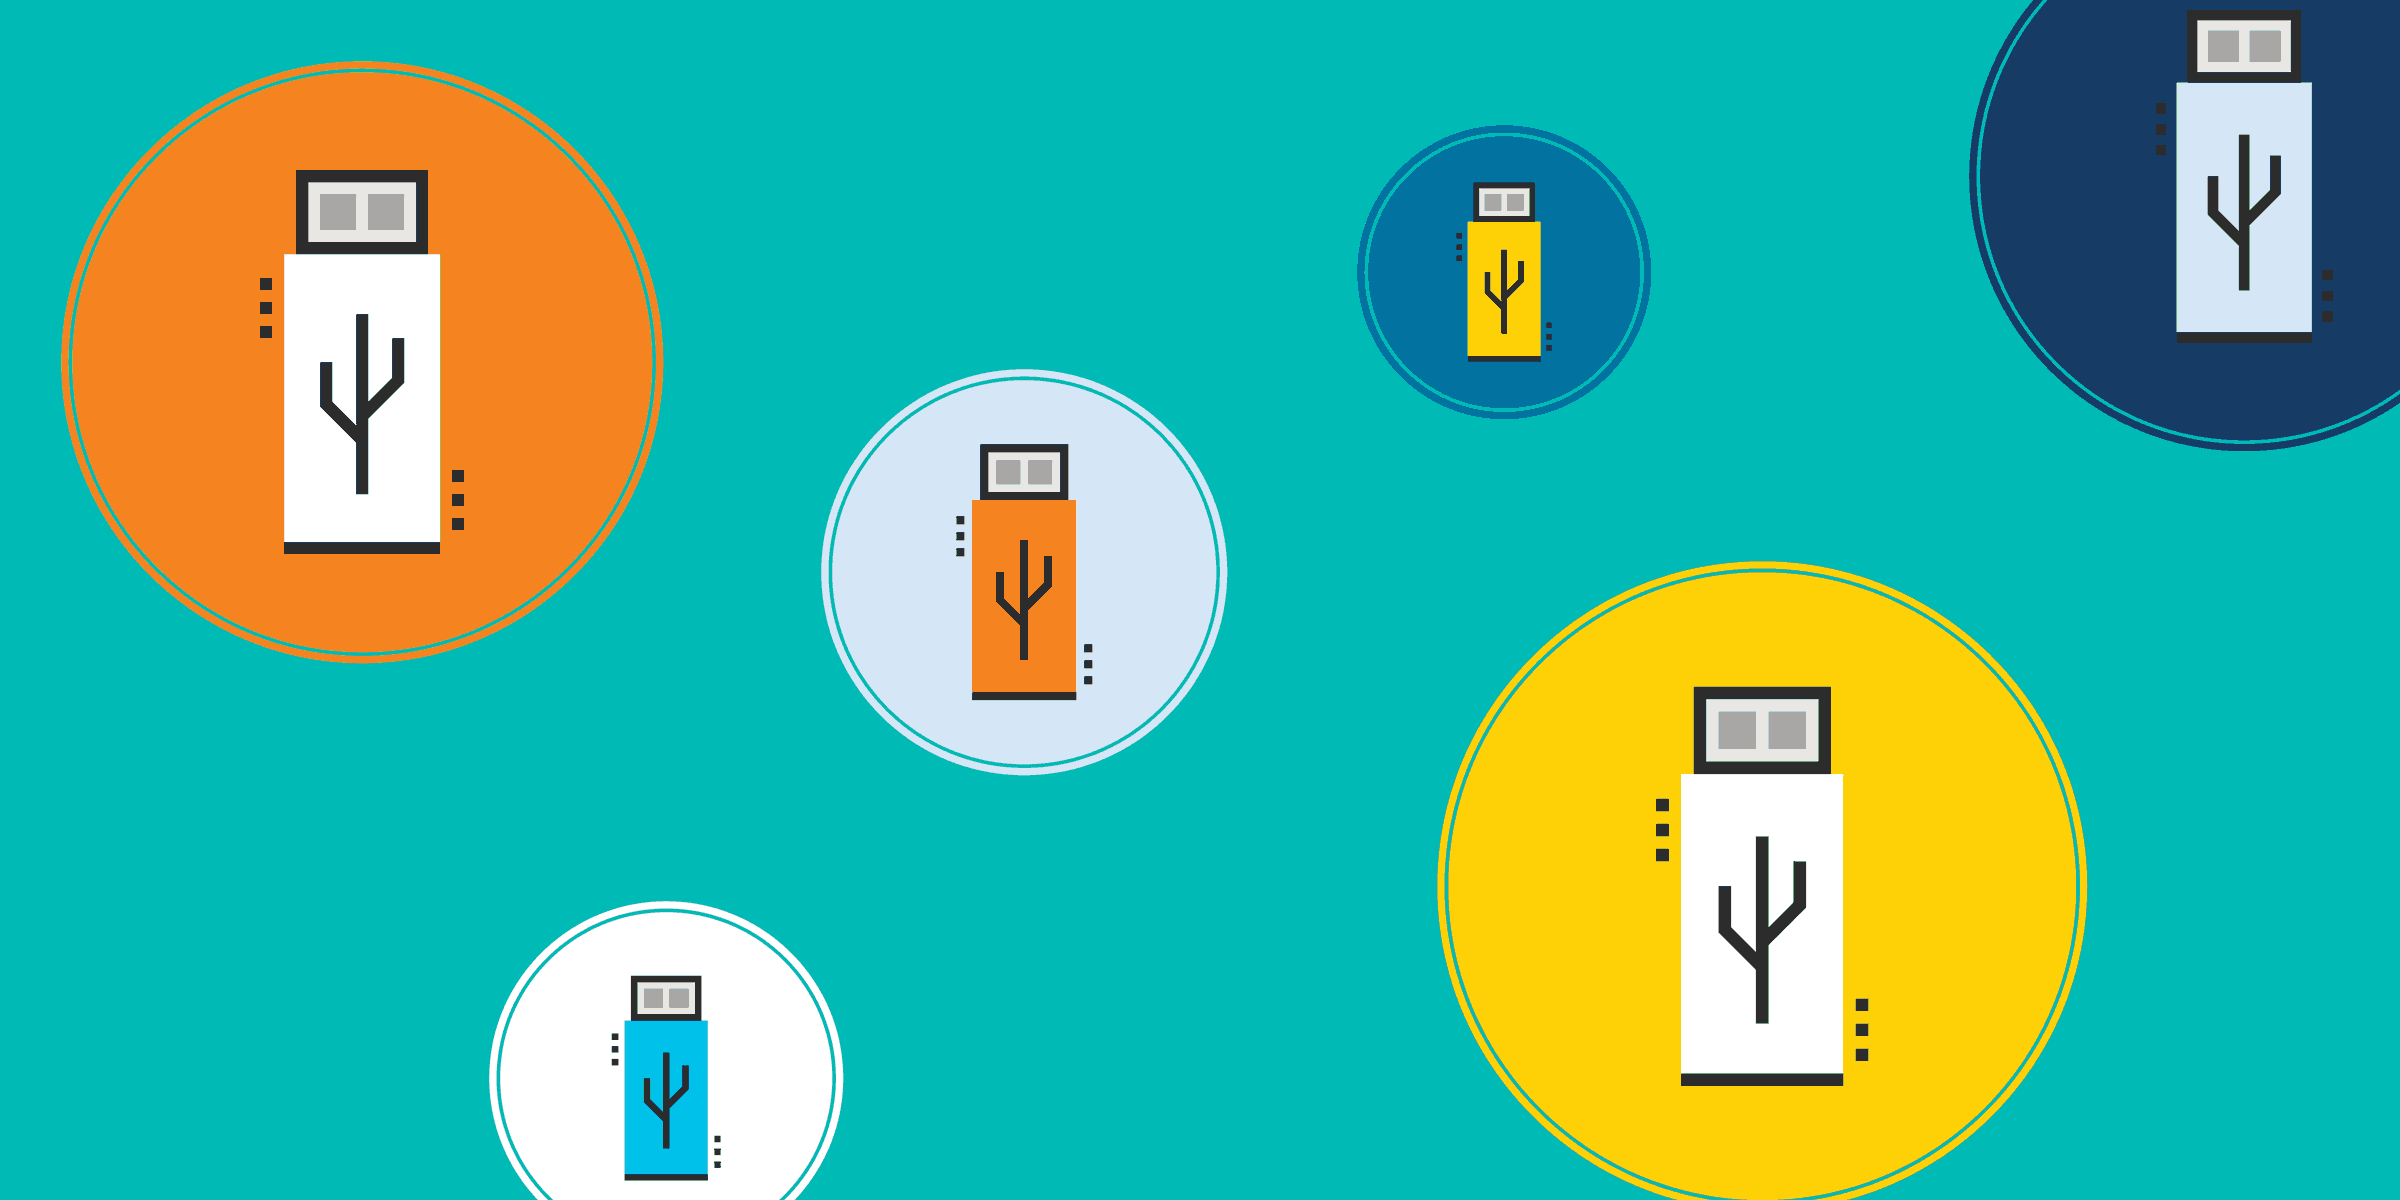 illustration of different sizes and colors of usb drives, representing the diversity of options available to nonprofits through the usb memory direct donation program at techsoup